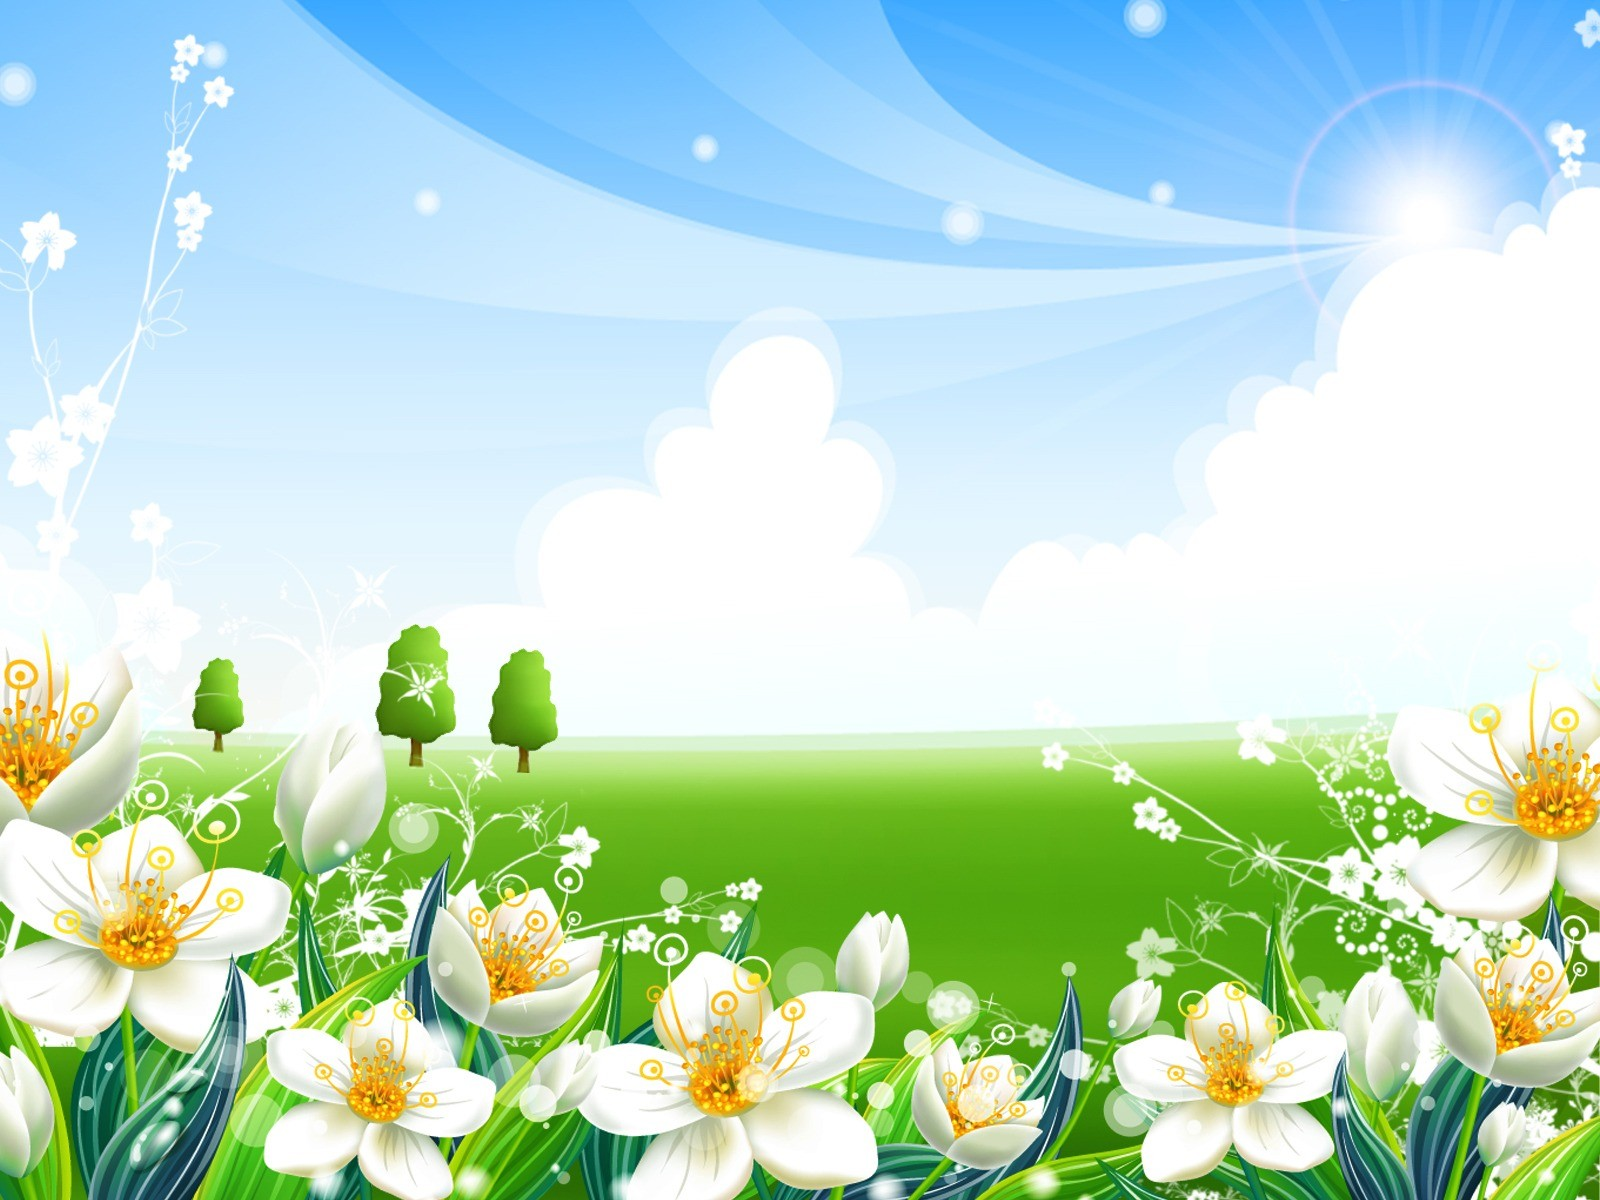 Wallpapers clipart clip freeuse Download wallpaper: picture, clipart, wallpapers for desktop ... clip freeuse